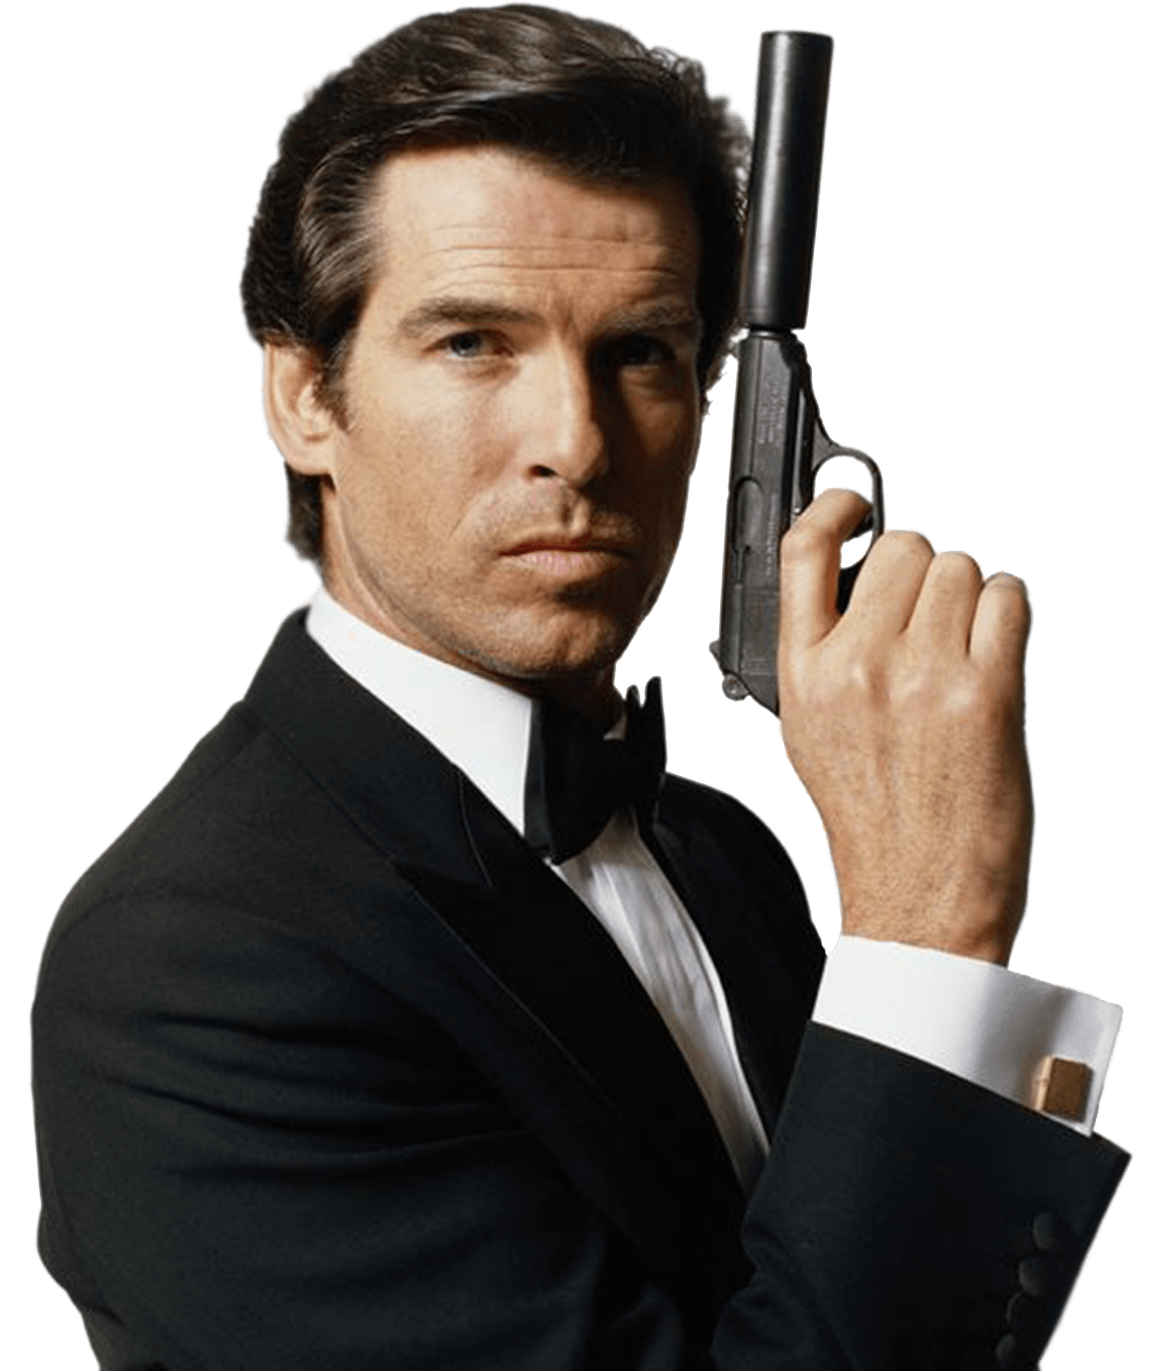 Pierce Brosnan James Bond 007 transparent PNG.